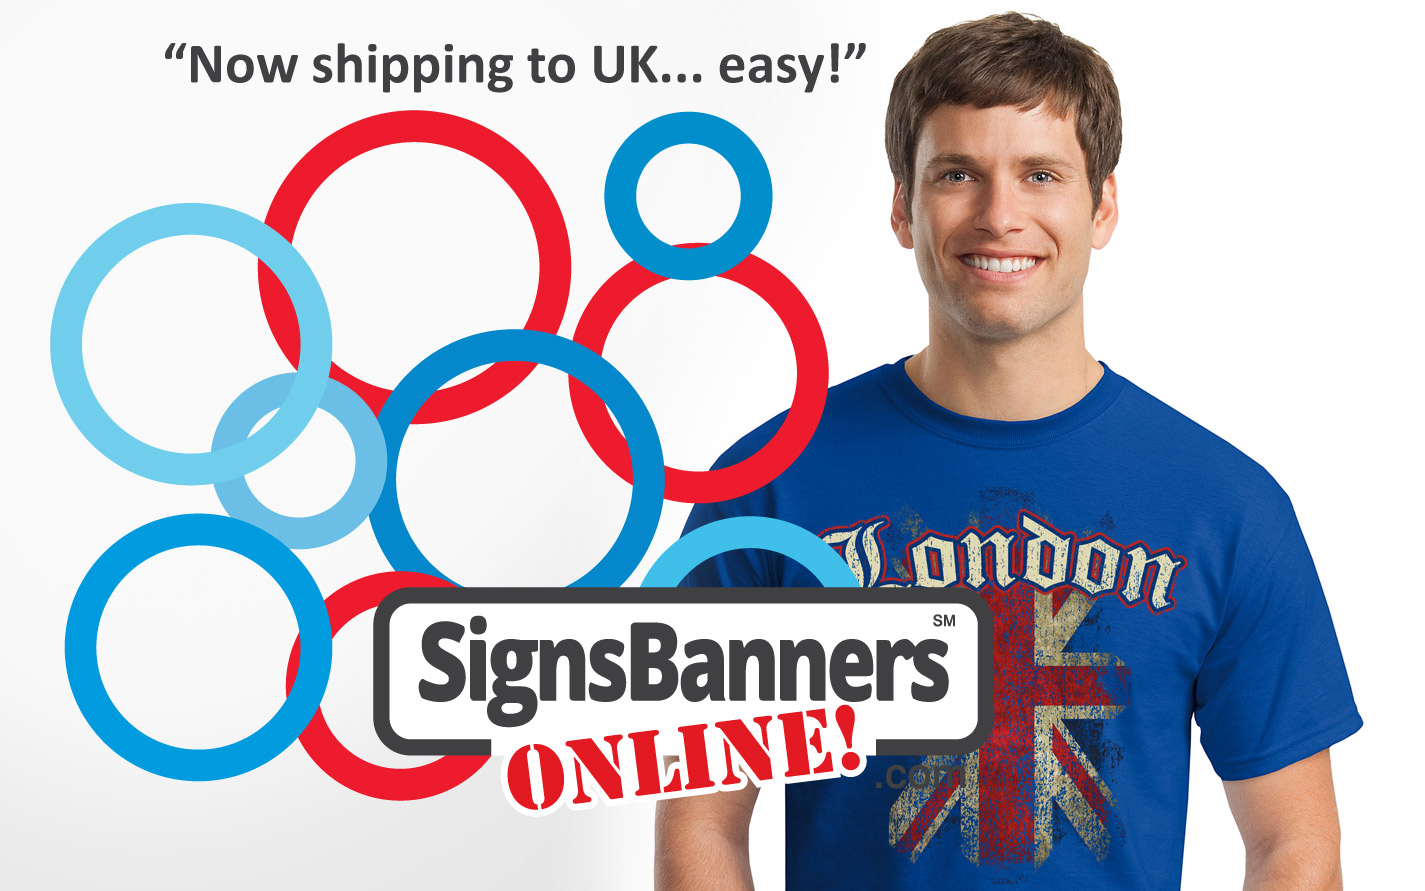 Now also available for UK they are my favorite supplier for Signs Banners.